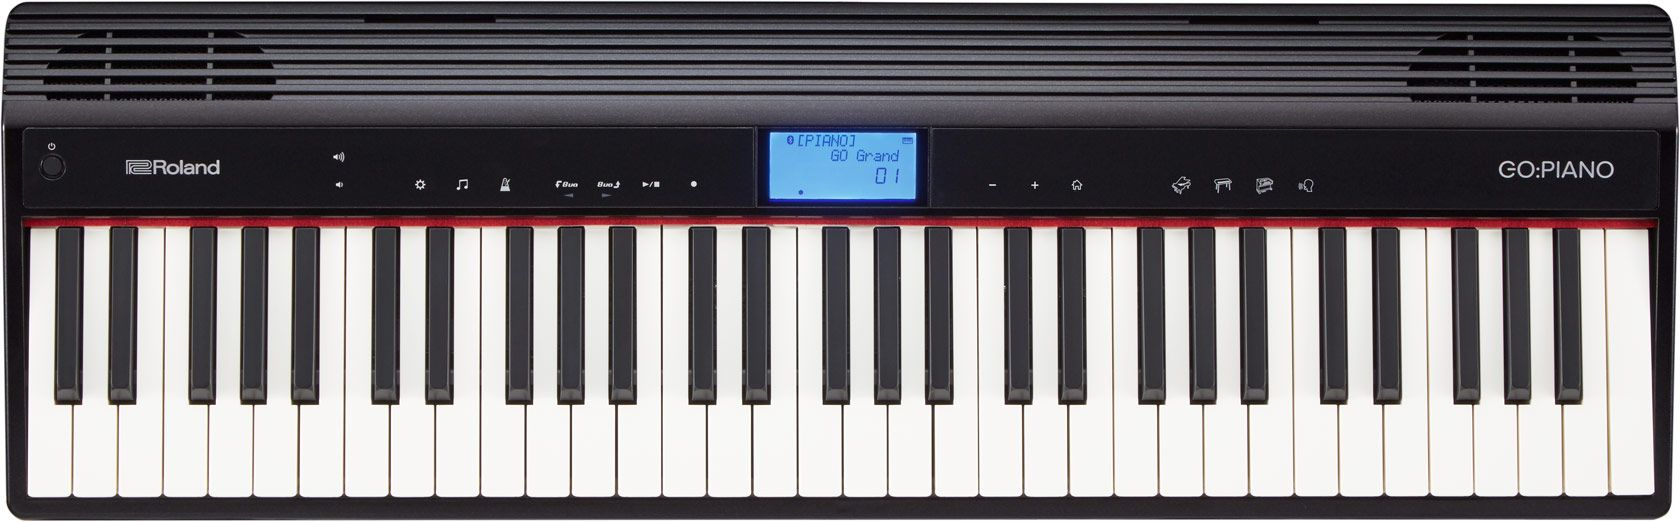 Piano Digital 61 Teclas Com Bluetooth GO-61P - Roland